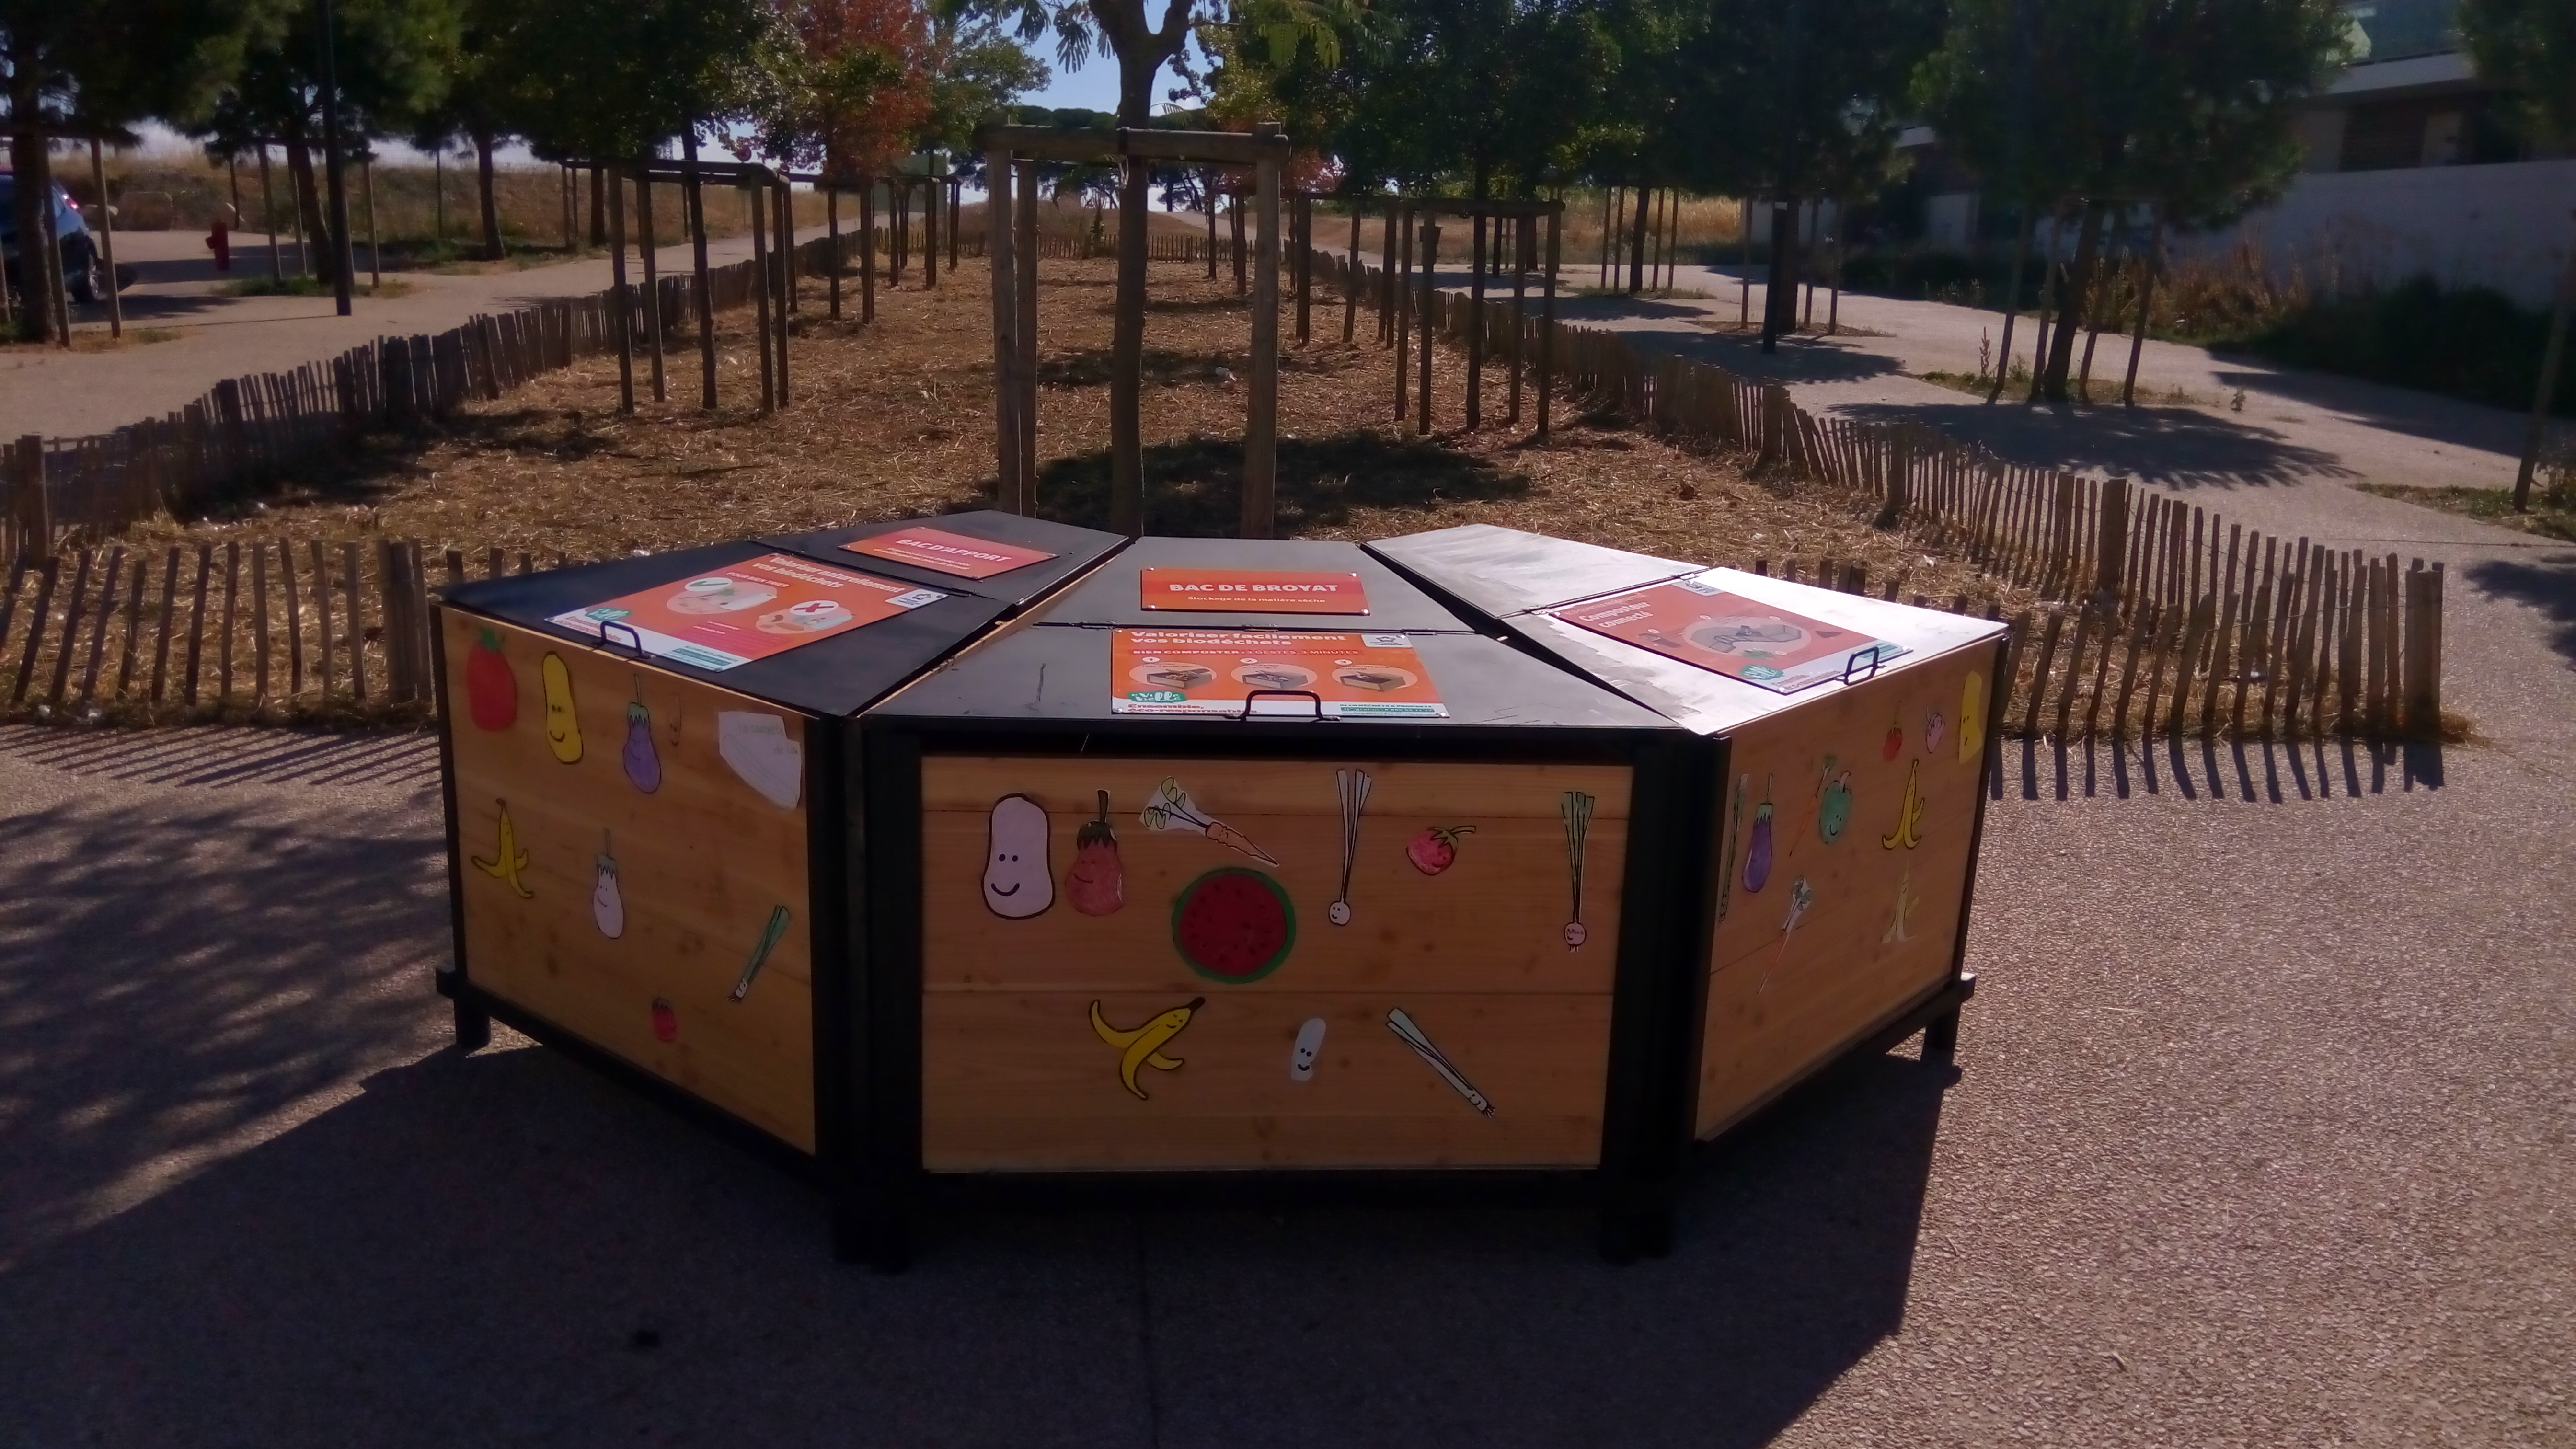 Montpellier: connected composting for a cleaner city